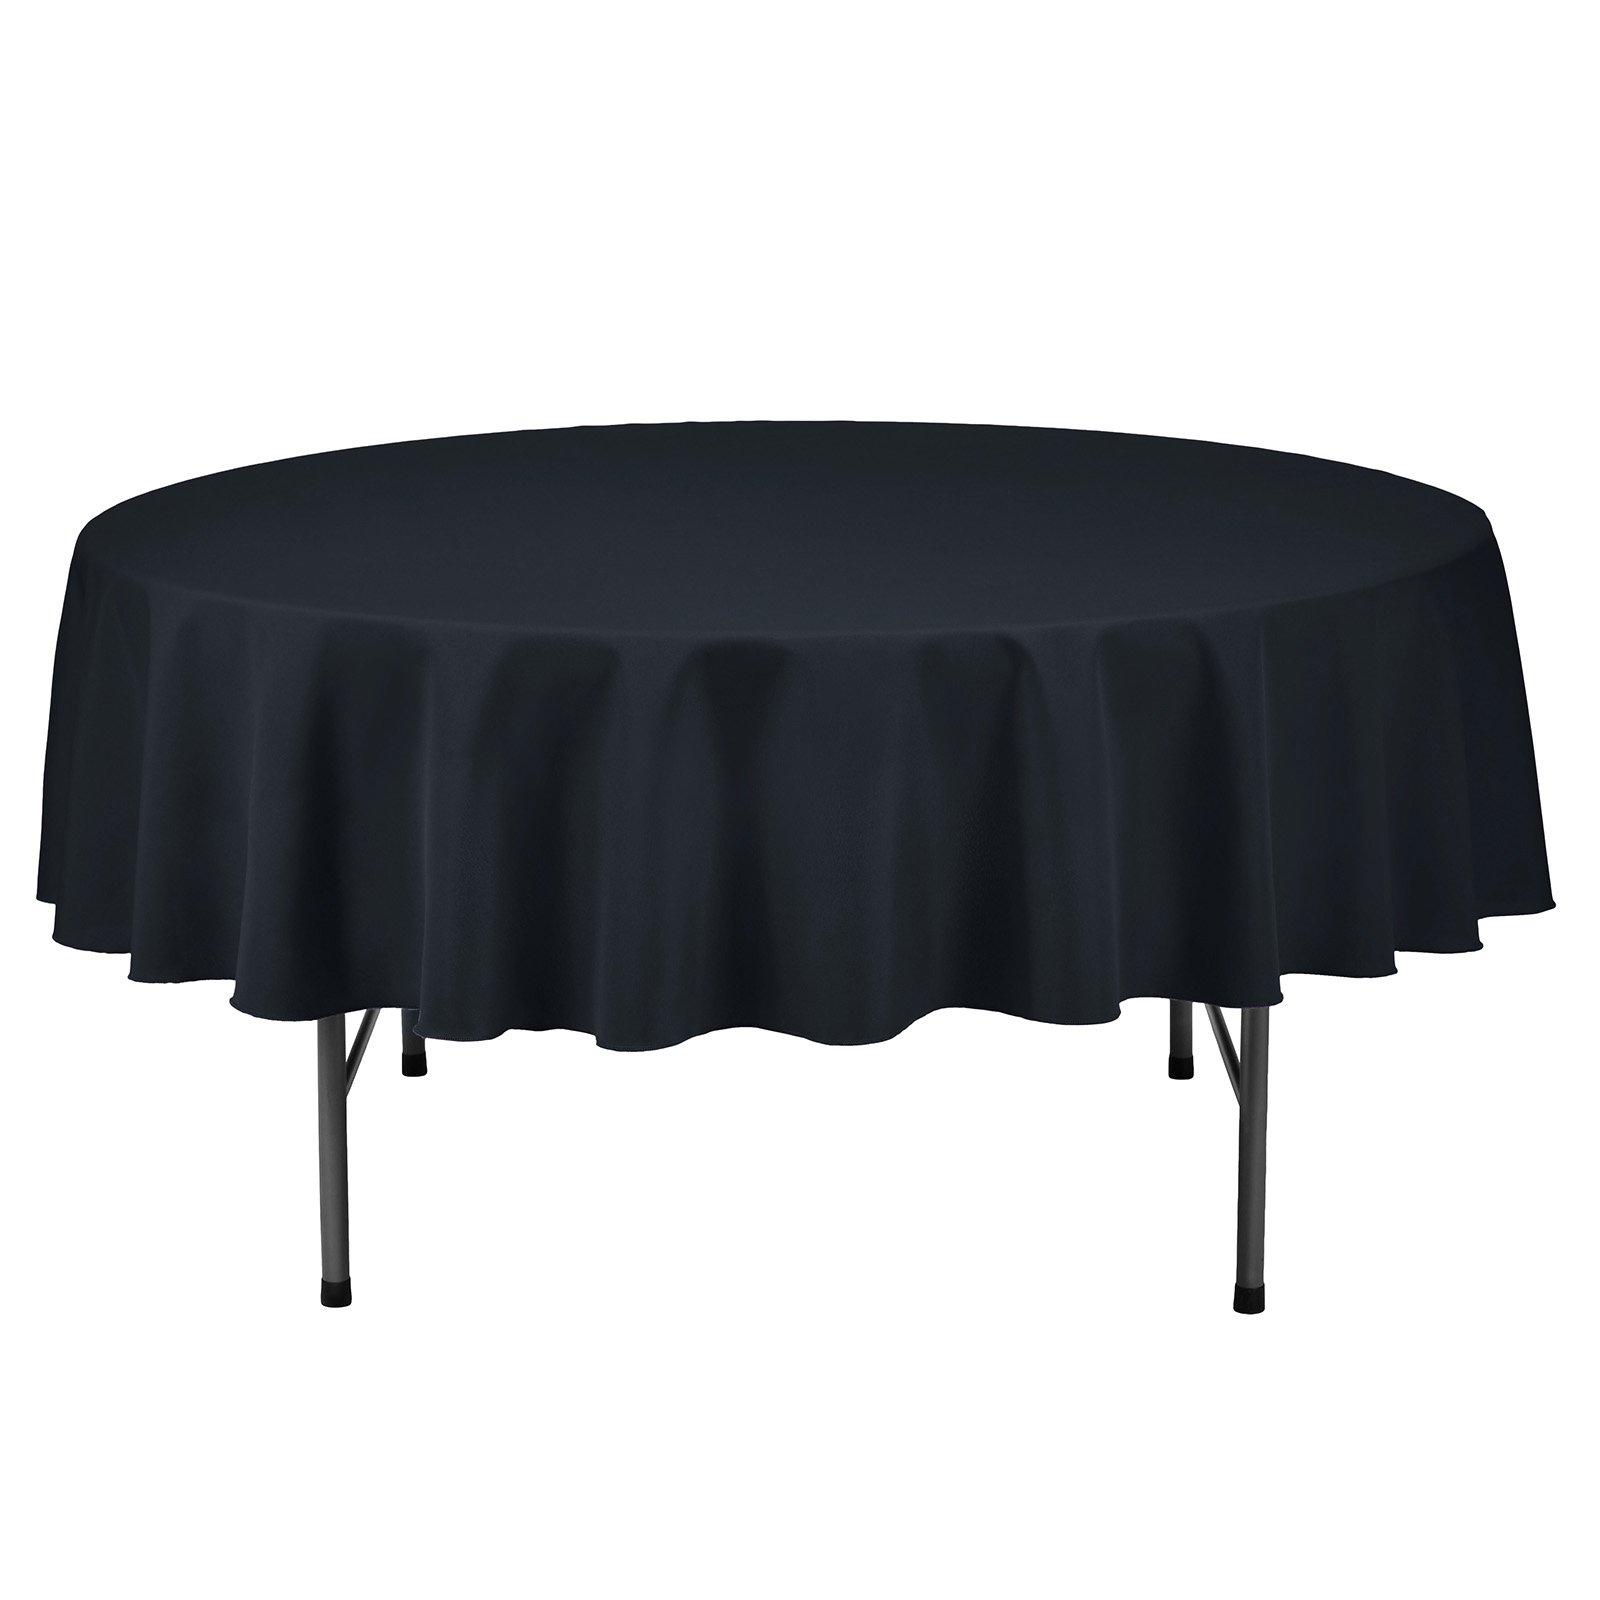 VEEYOO Tablecloth 90 inch Round Solid Polyester Table Cloth for Wedding Restaurant Party Kitchen Dining Table Christmas, Navy